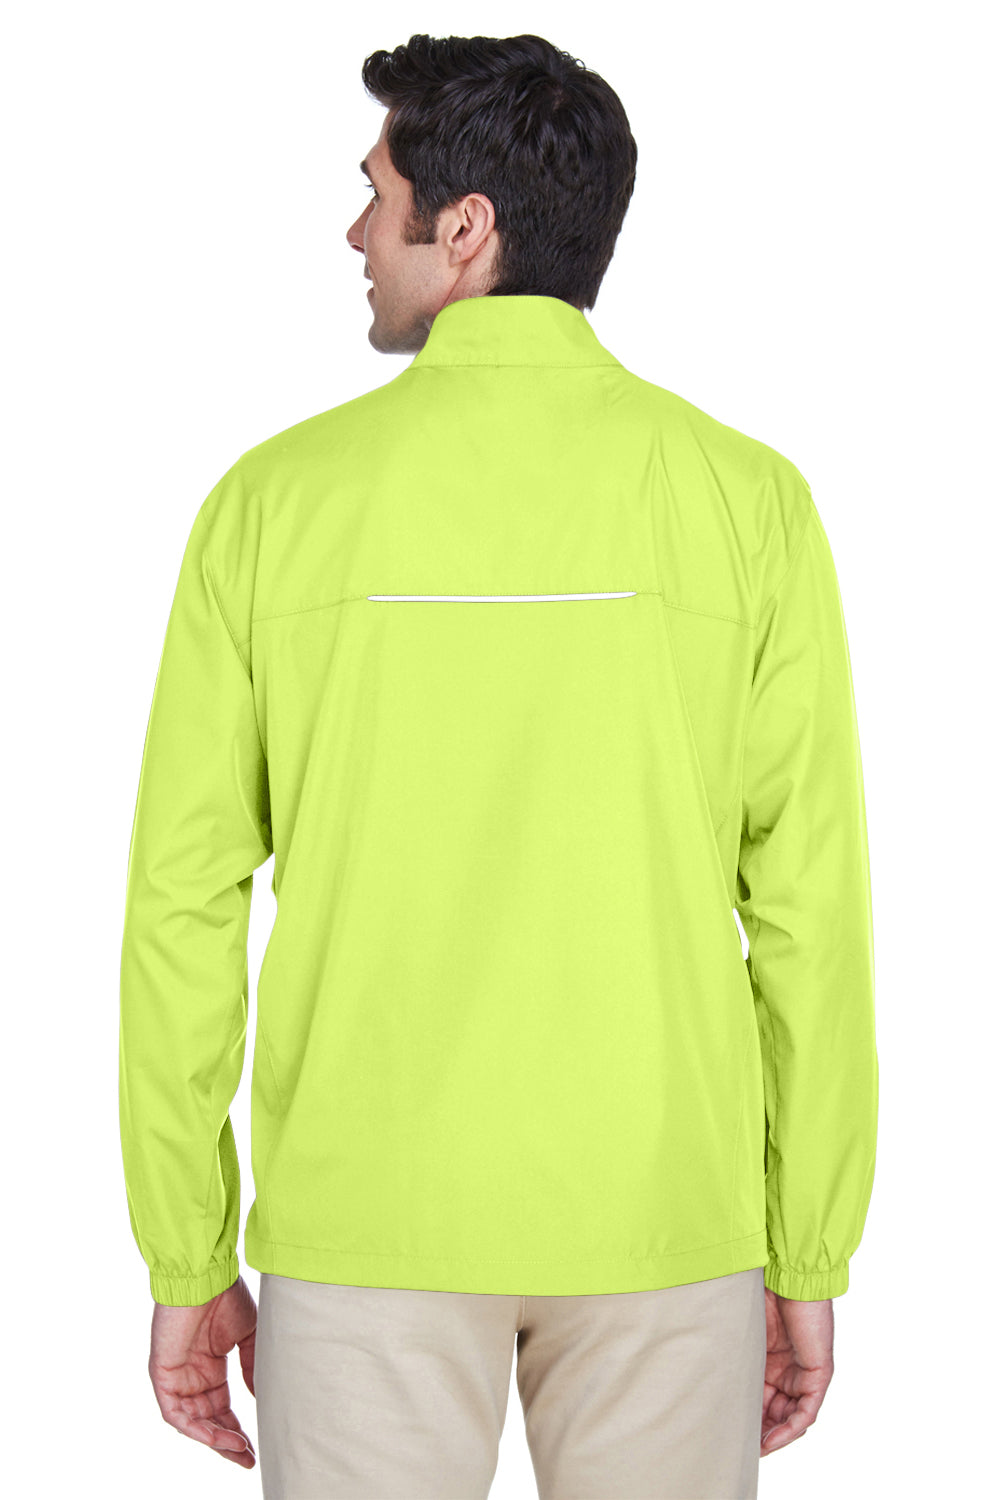 Core 365 88183 Mens Motivate Water Resistant Full Zip Jacket Safety Yellow Back